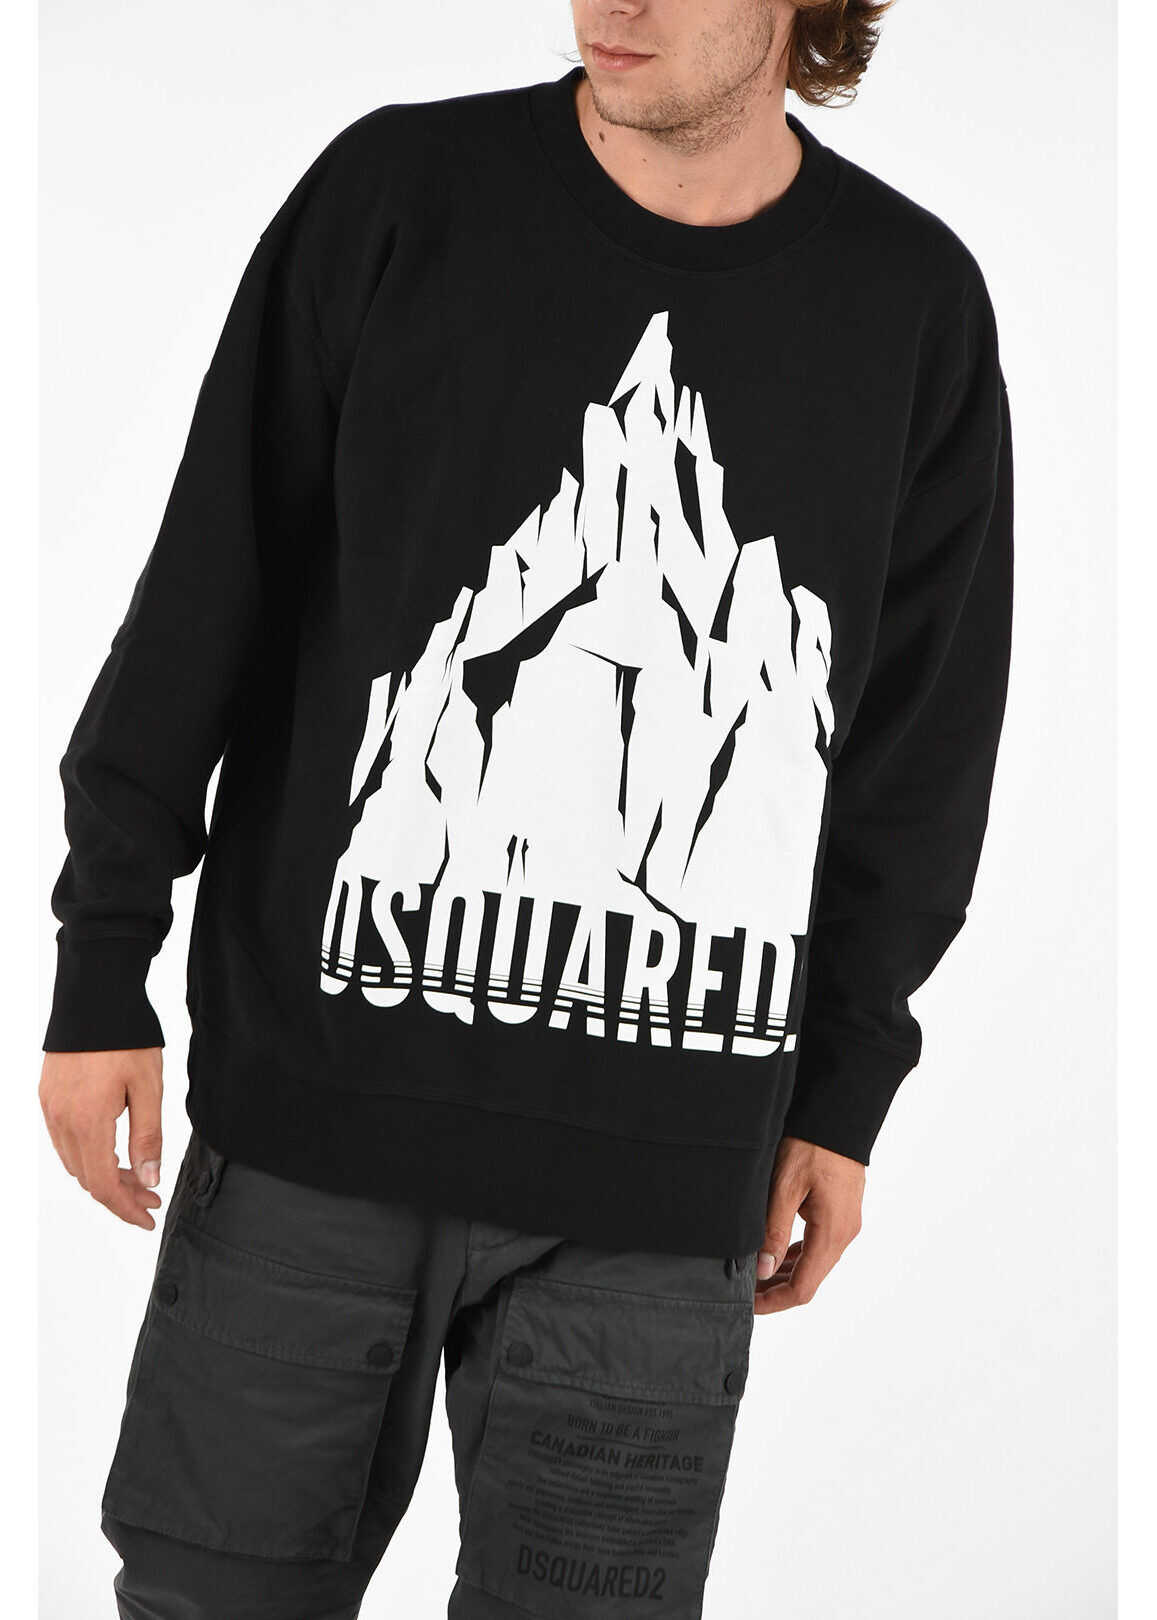 DSQUARED2 Printed Crew-Neck SLOUCH FIT Sweatshirt BLACK imagine